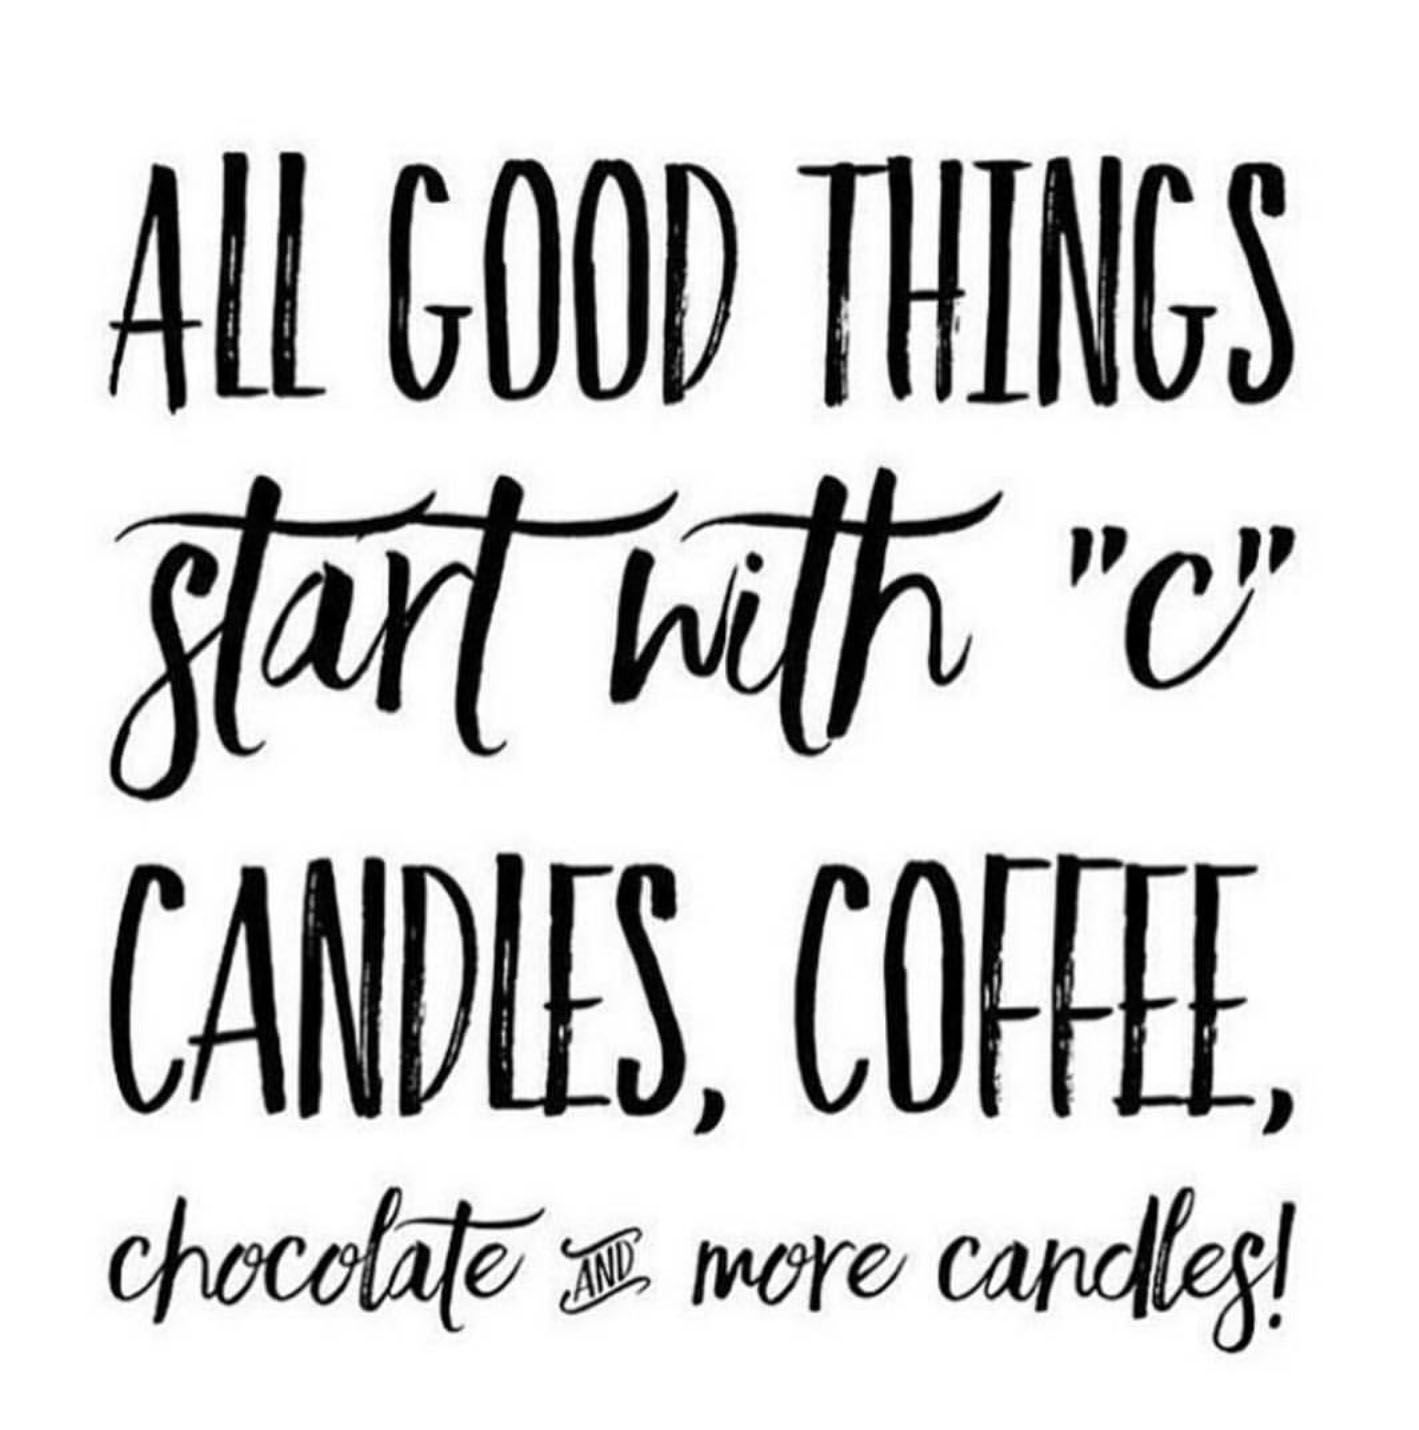 All Good Thins Start With C Candles Coffee Chocolate And More Candles Candle Quotes Funny Candle Quotes Country Scents Candles